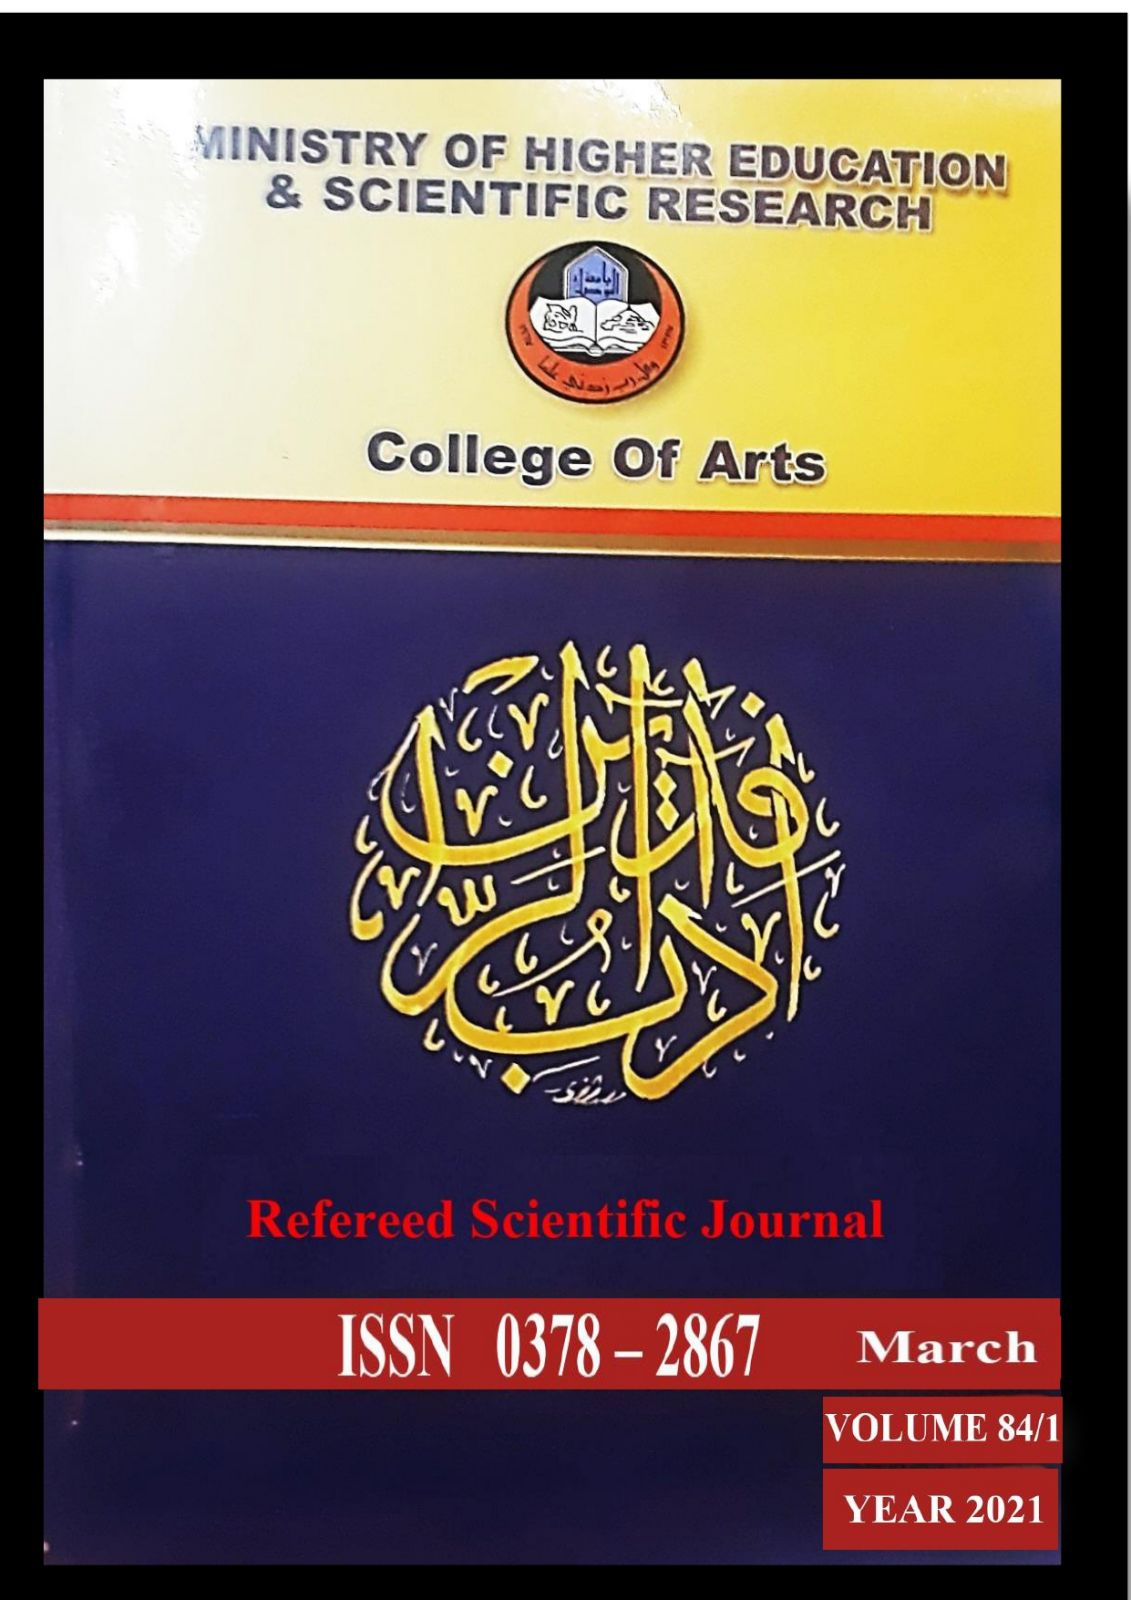 http://www.iasj.net/covers/78/78.jpg